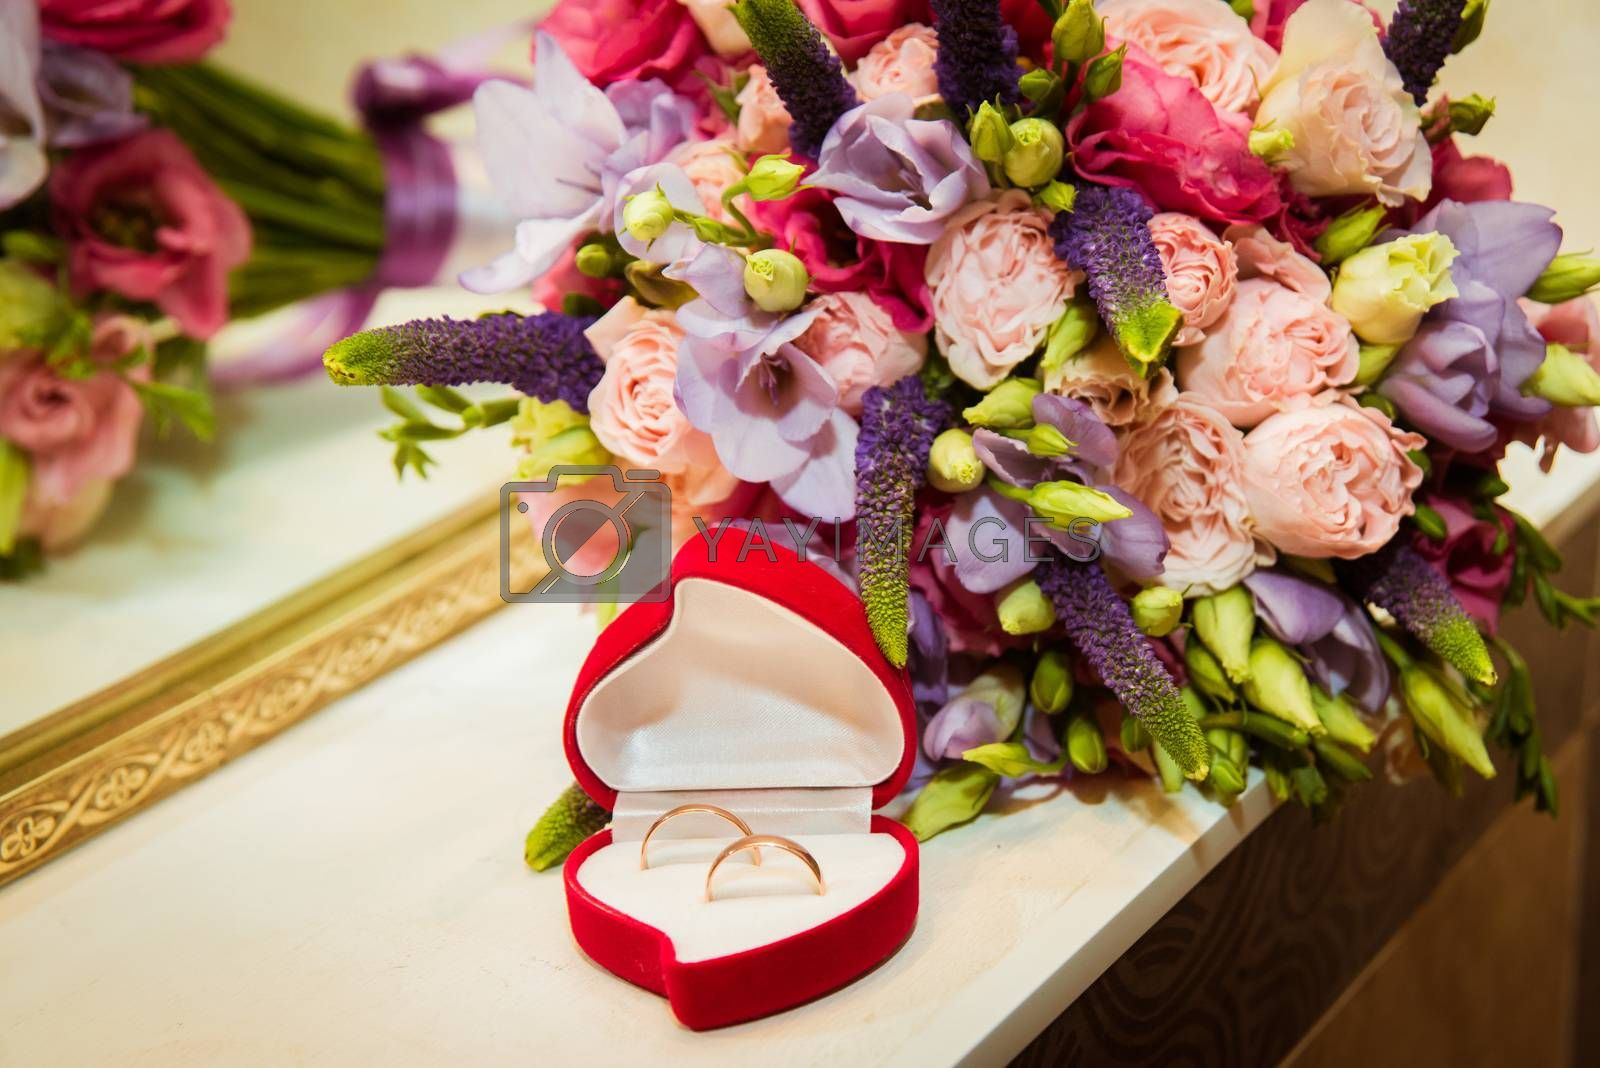 Beautiful Bridal bouquet and two wedding rings in red box in the shape of a heart.